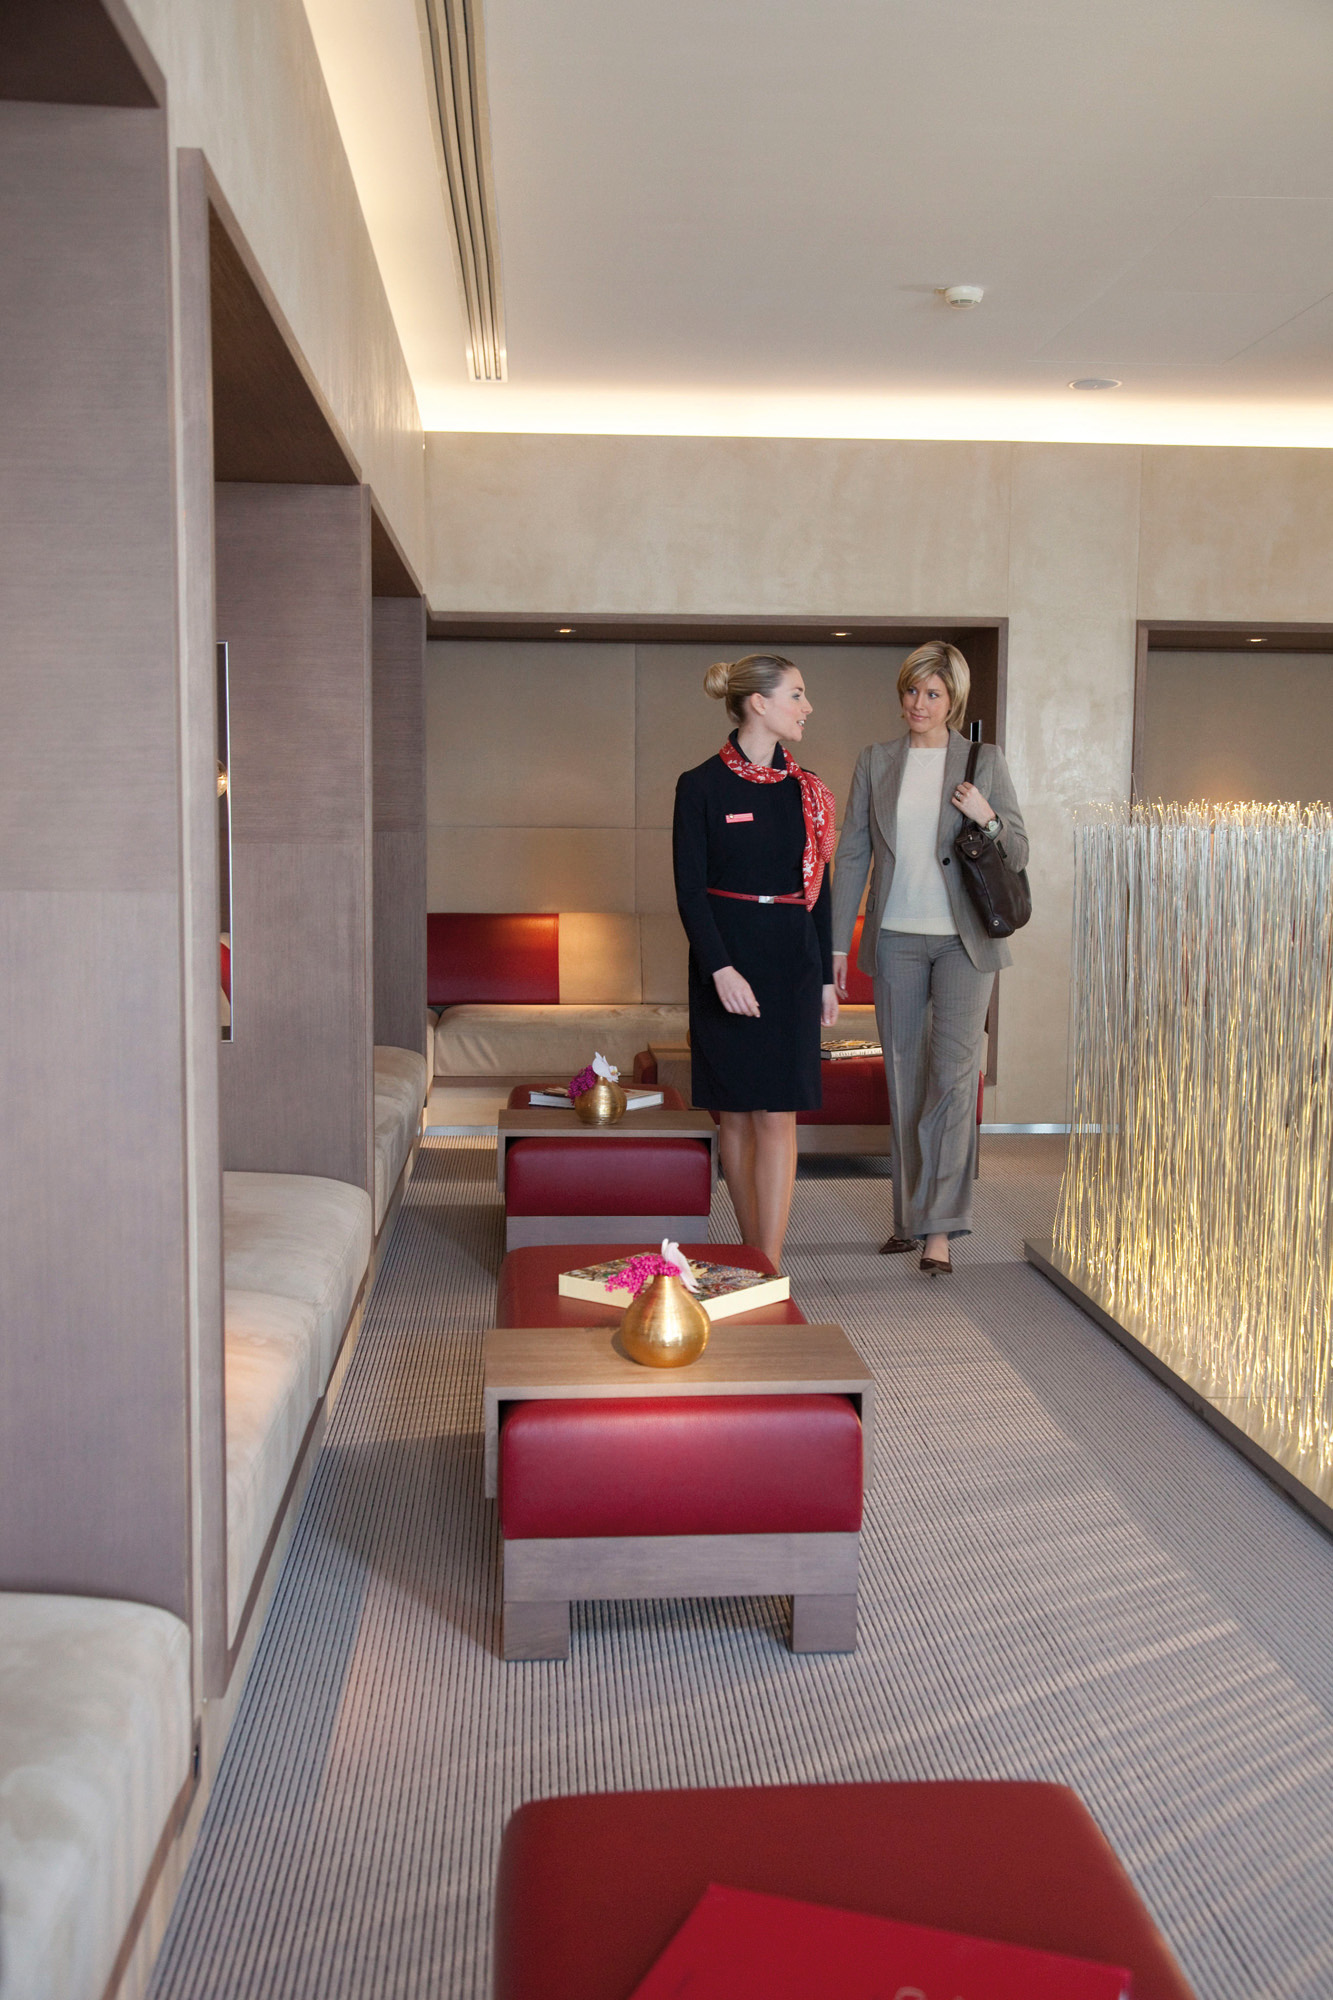 Air France Charles de Gaulle  - World's Best Airline Lounges